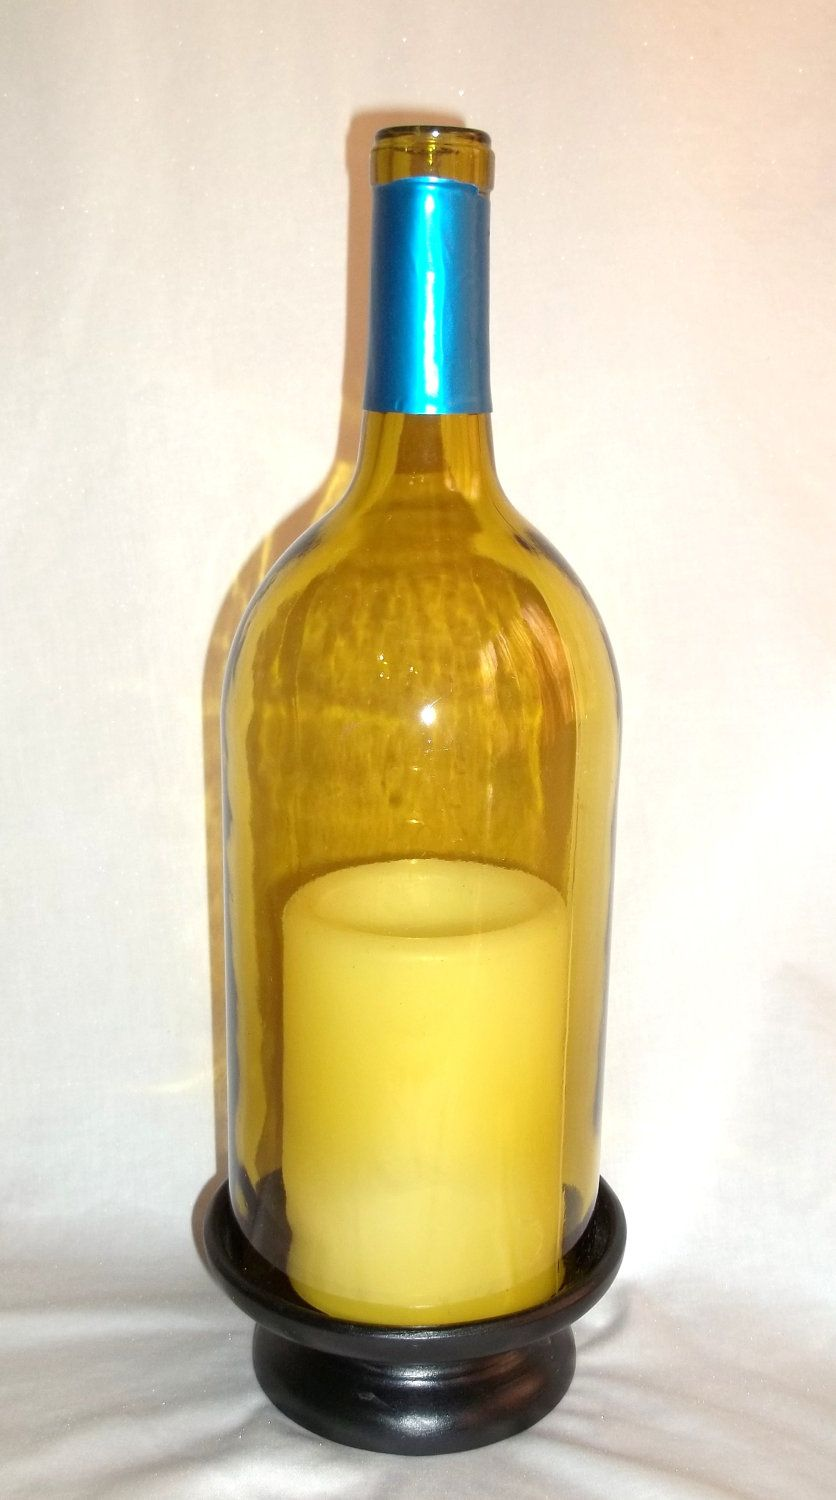 Winebottelighting golden yellow wine bottle candle light by